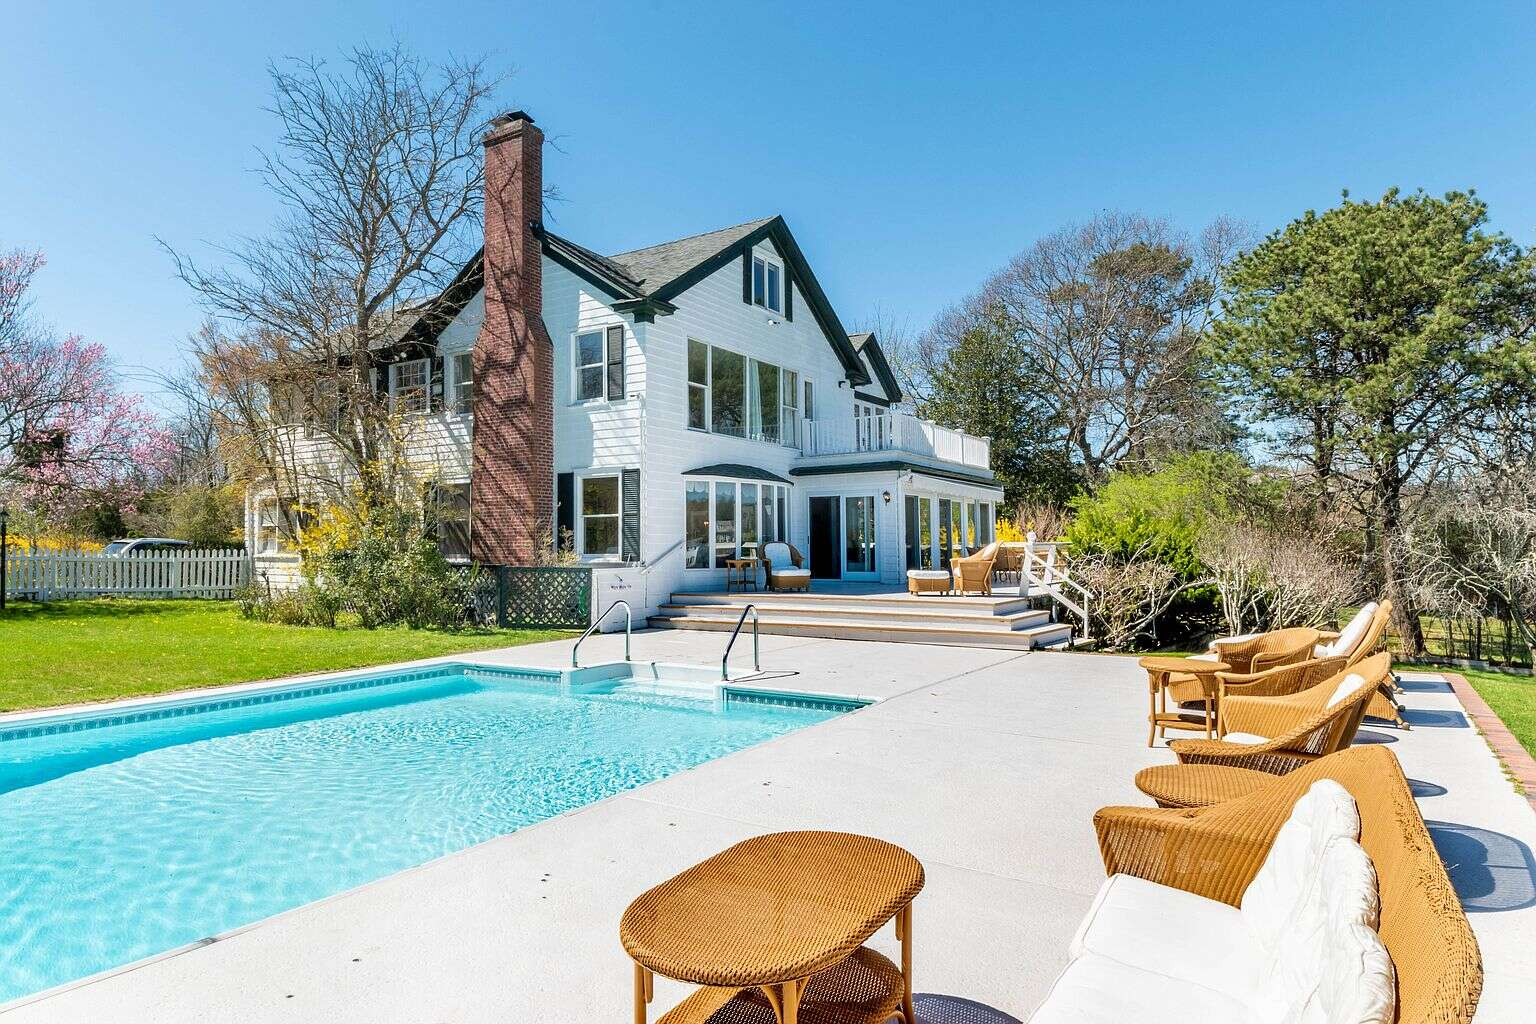 Luxury vacation rentals usa - New york - Hamptons - Westhampton beach - Stately Waterfront Home - Image 1/41